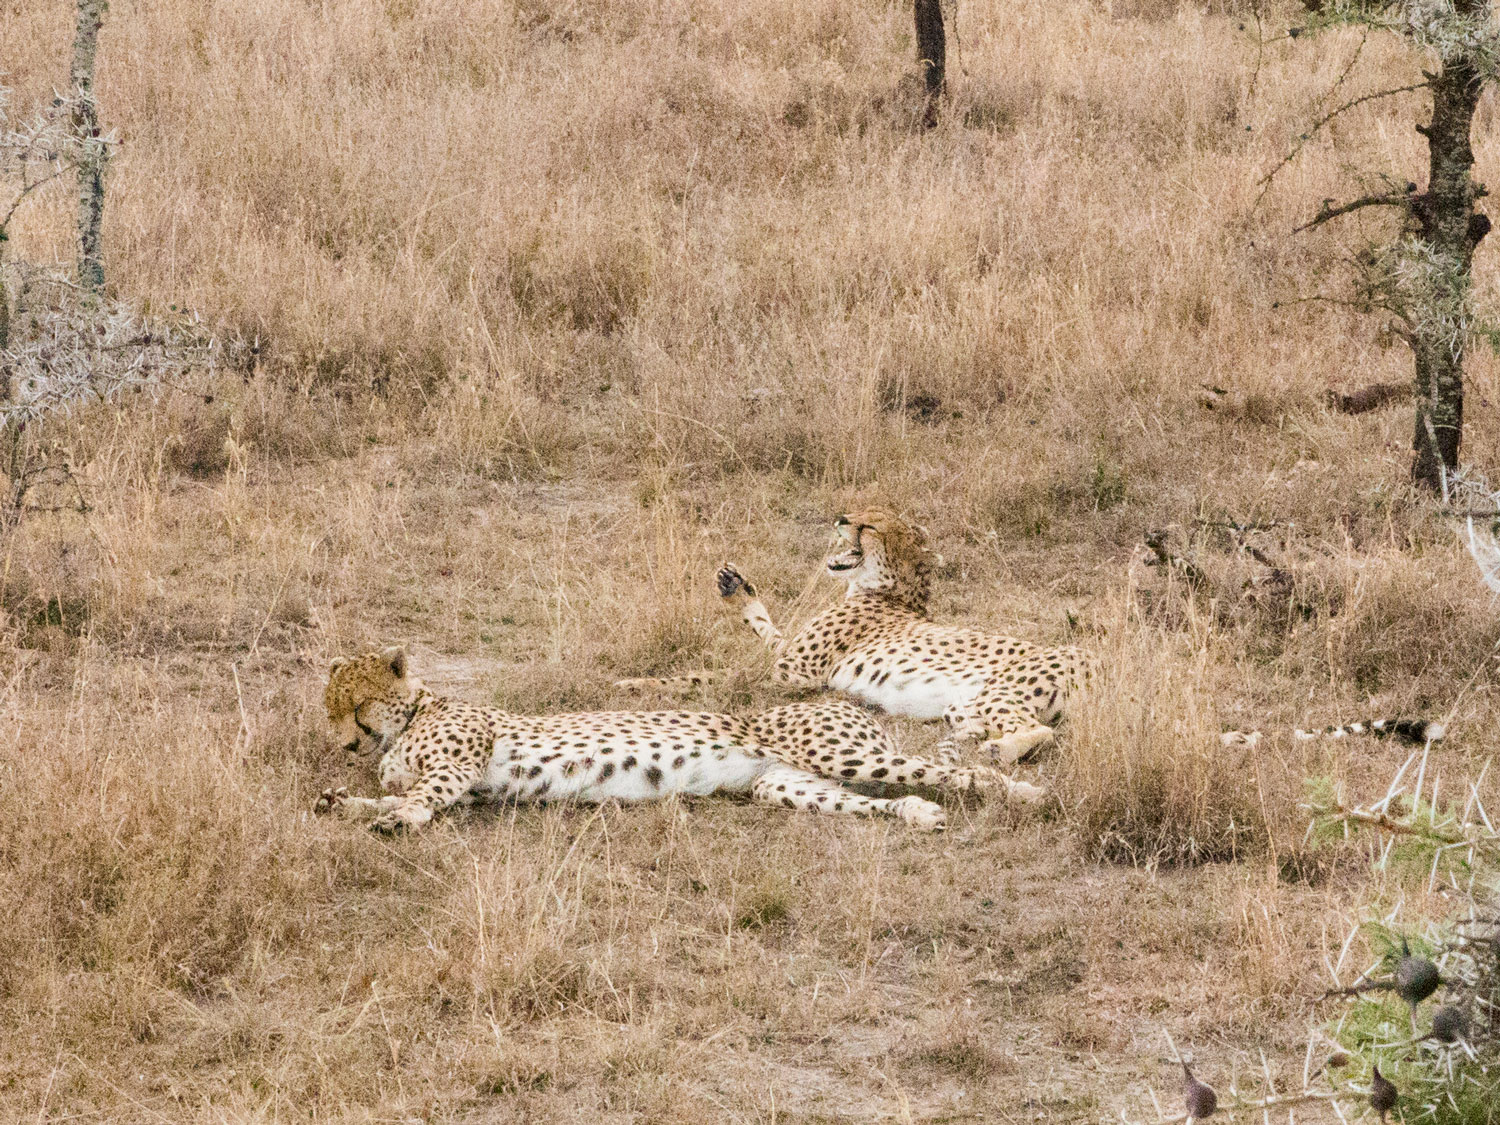 Two cheetah brothers resting